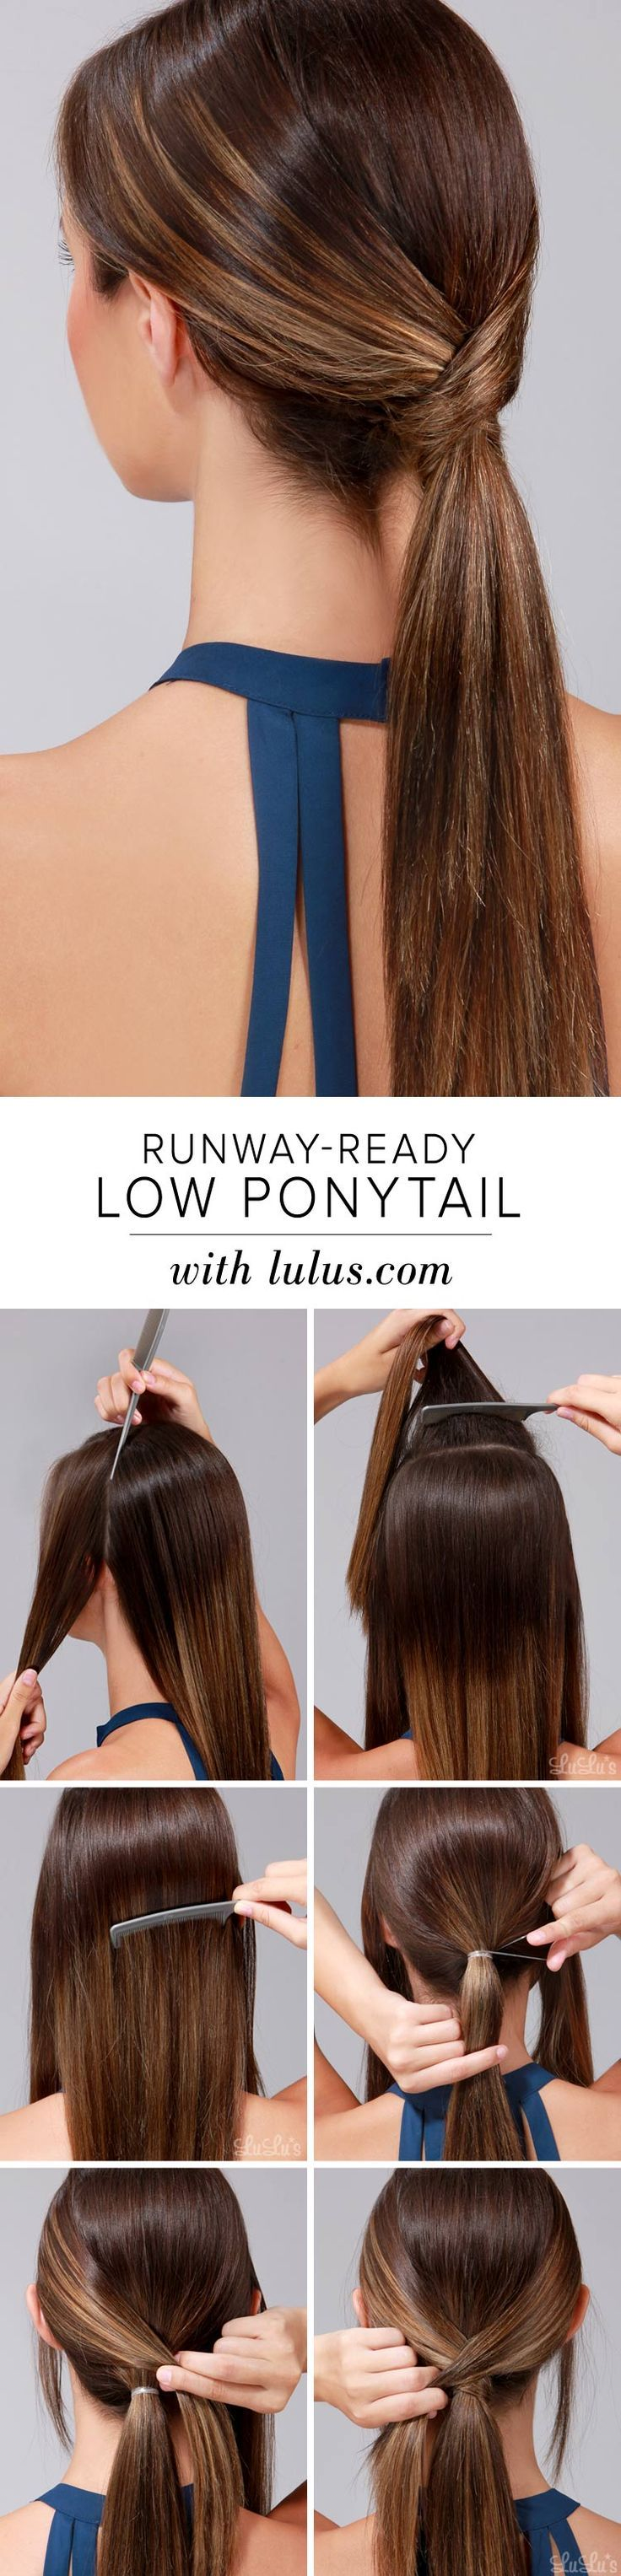 10 quick and easy hairstyles step by step the learnify - 3 Easy Peasy Headband Braids Quick Hairstyles For Short